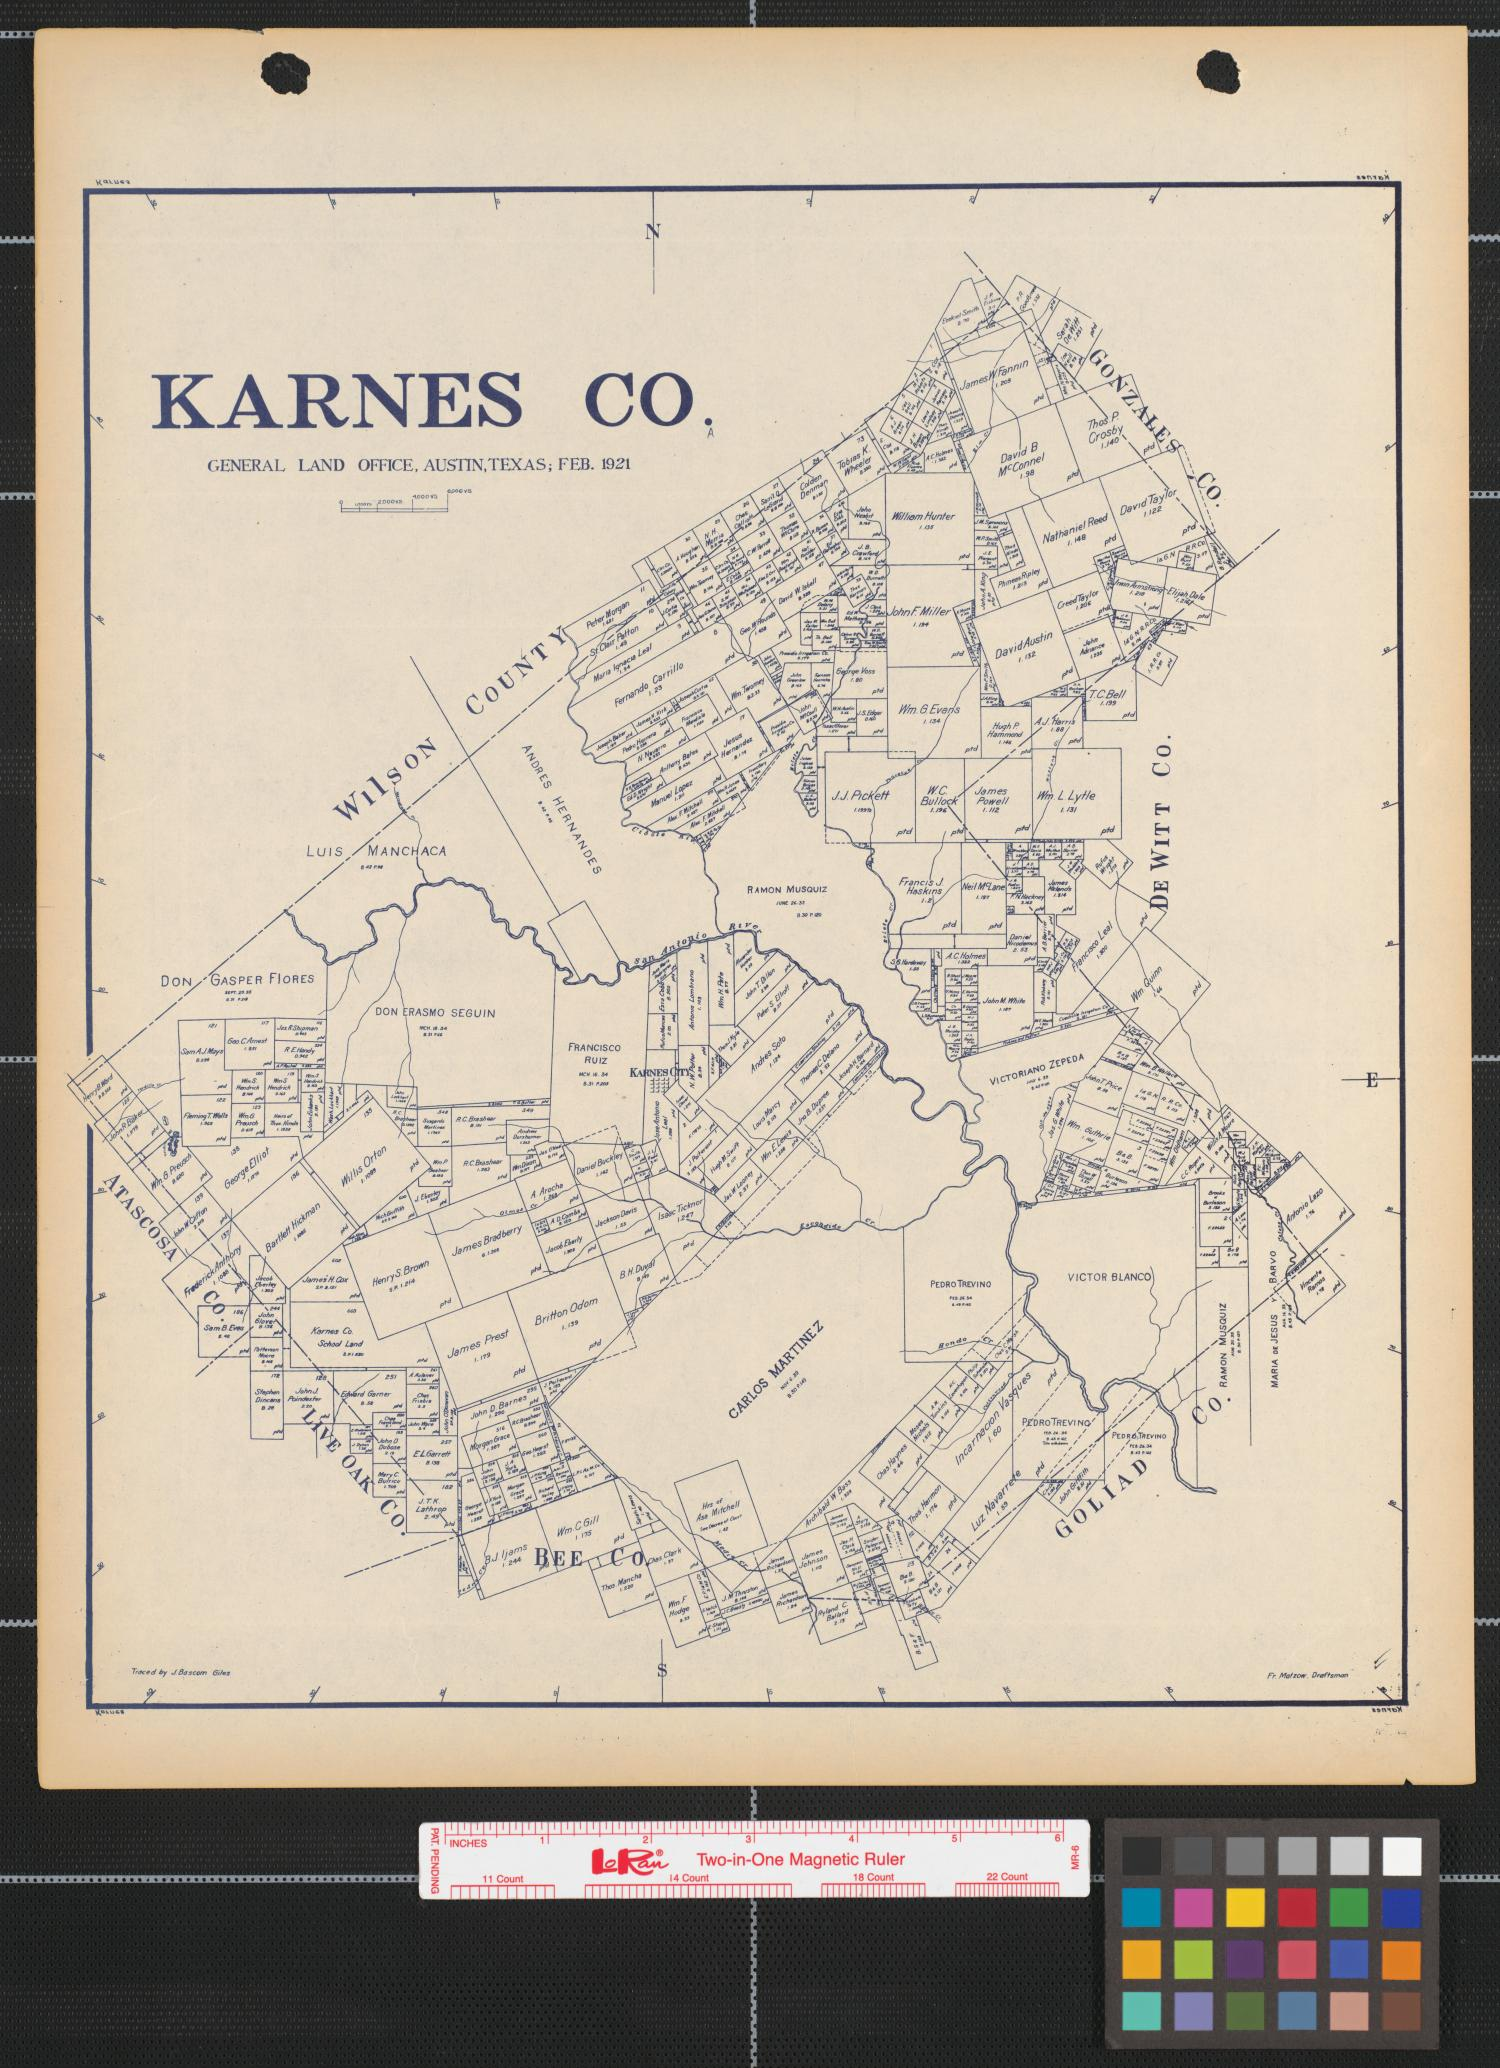 Karnes County - The Portal to Texas History on blanco county road map, kent county road map, jasper county road map, upton county road map, wilson county road map, gregg county road map, williamson county road map, hartley county road map, rockwall county road map, dallam county road map, mason county road map, hood county road map, putnam county road map, la salle county road map, mills county road map, lee county road map, bee county road map, jim wells county road map, hale county road map,